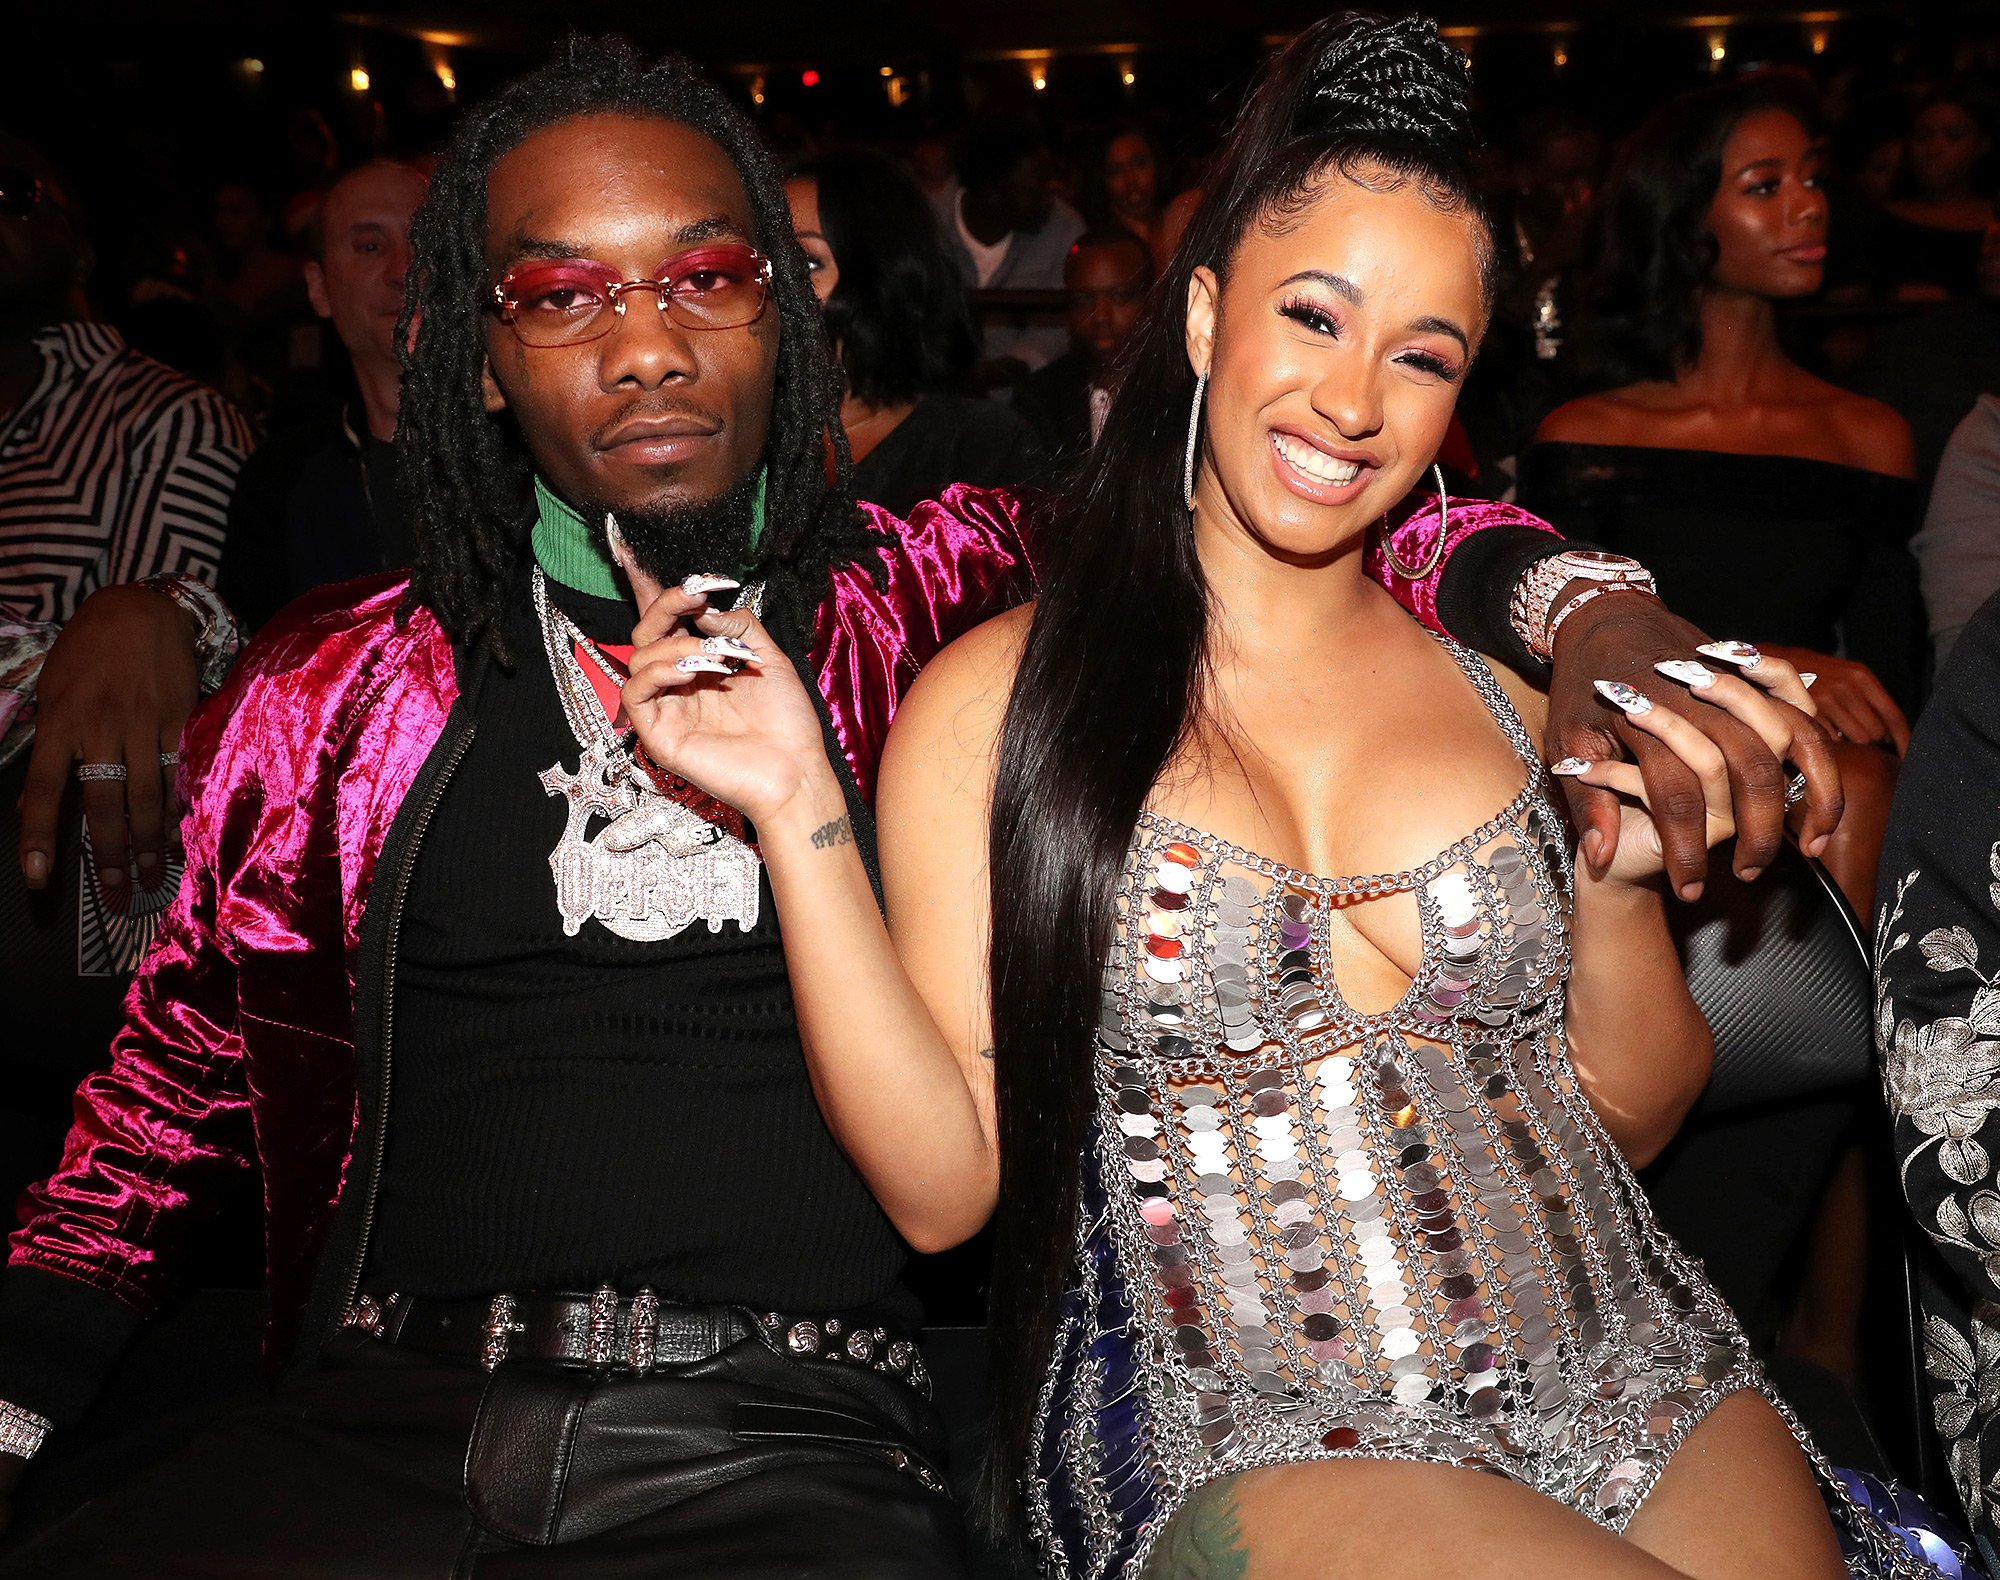 Cardi B Confirms She Married Offset In September: Cardi B Confirms She And Offset Are Married: 'There Are